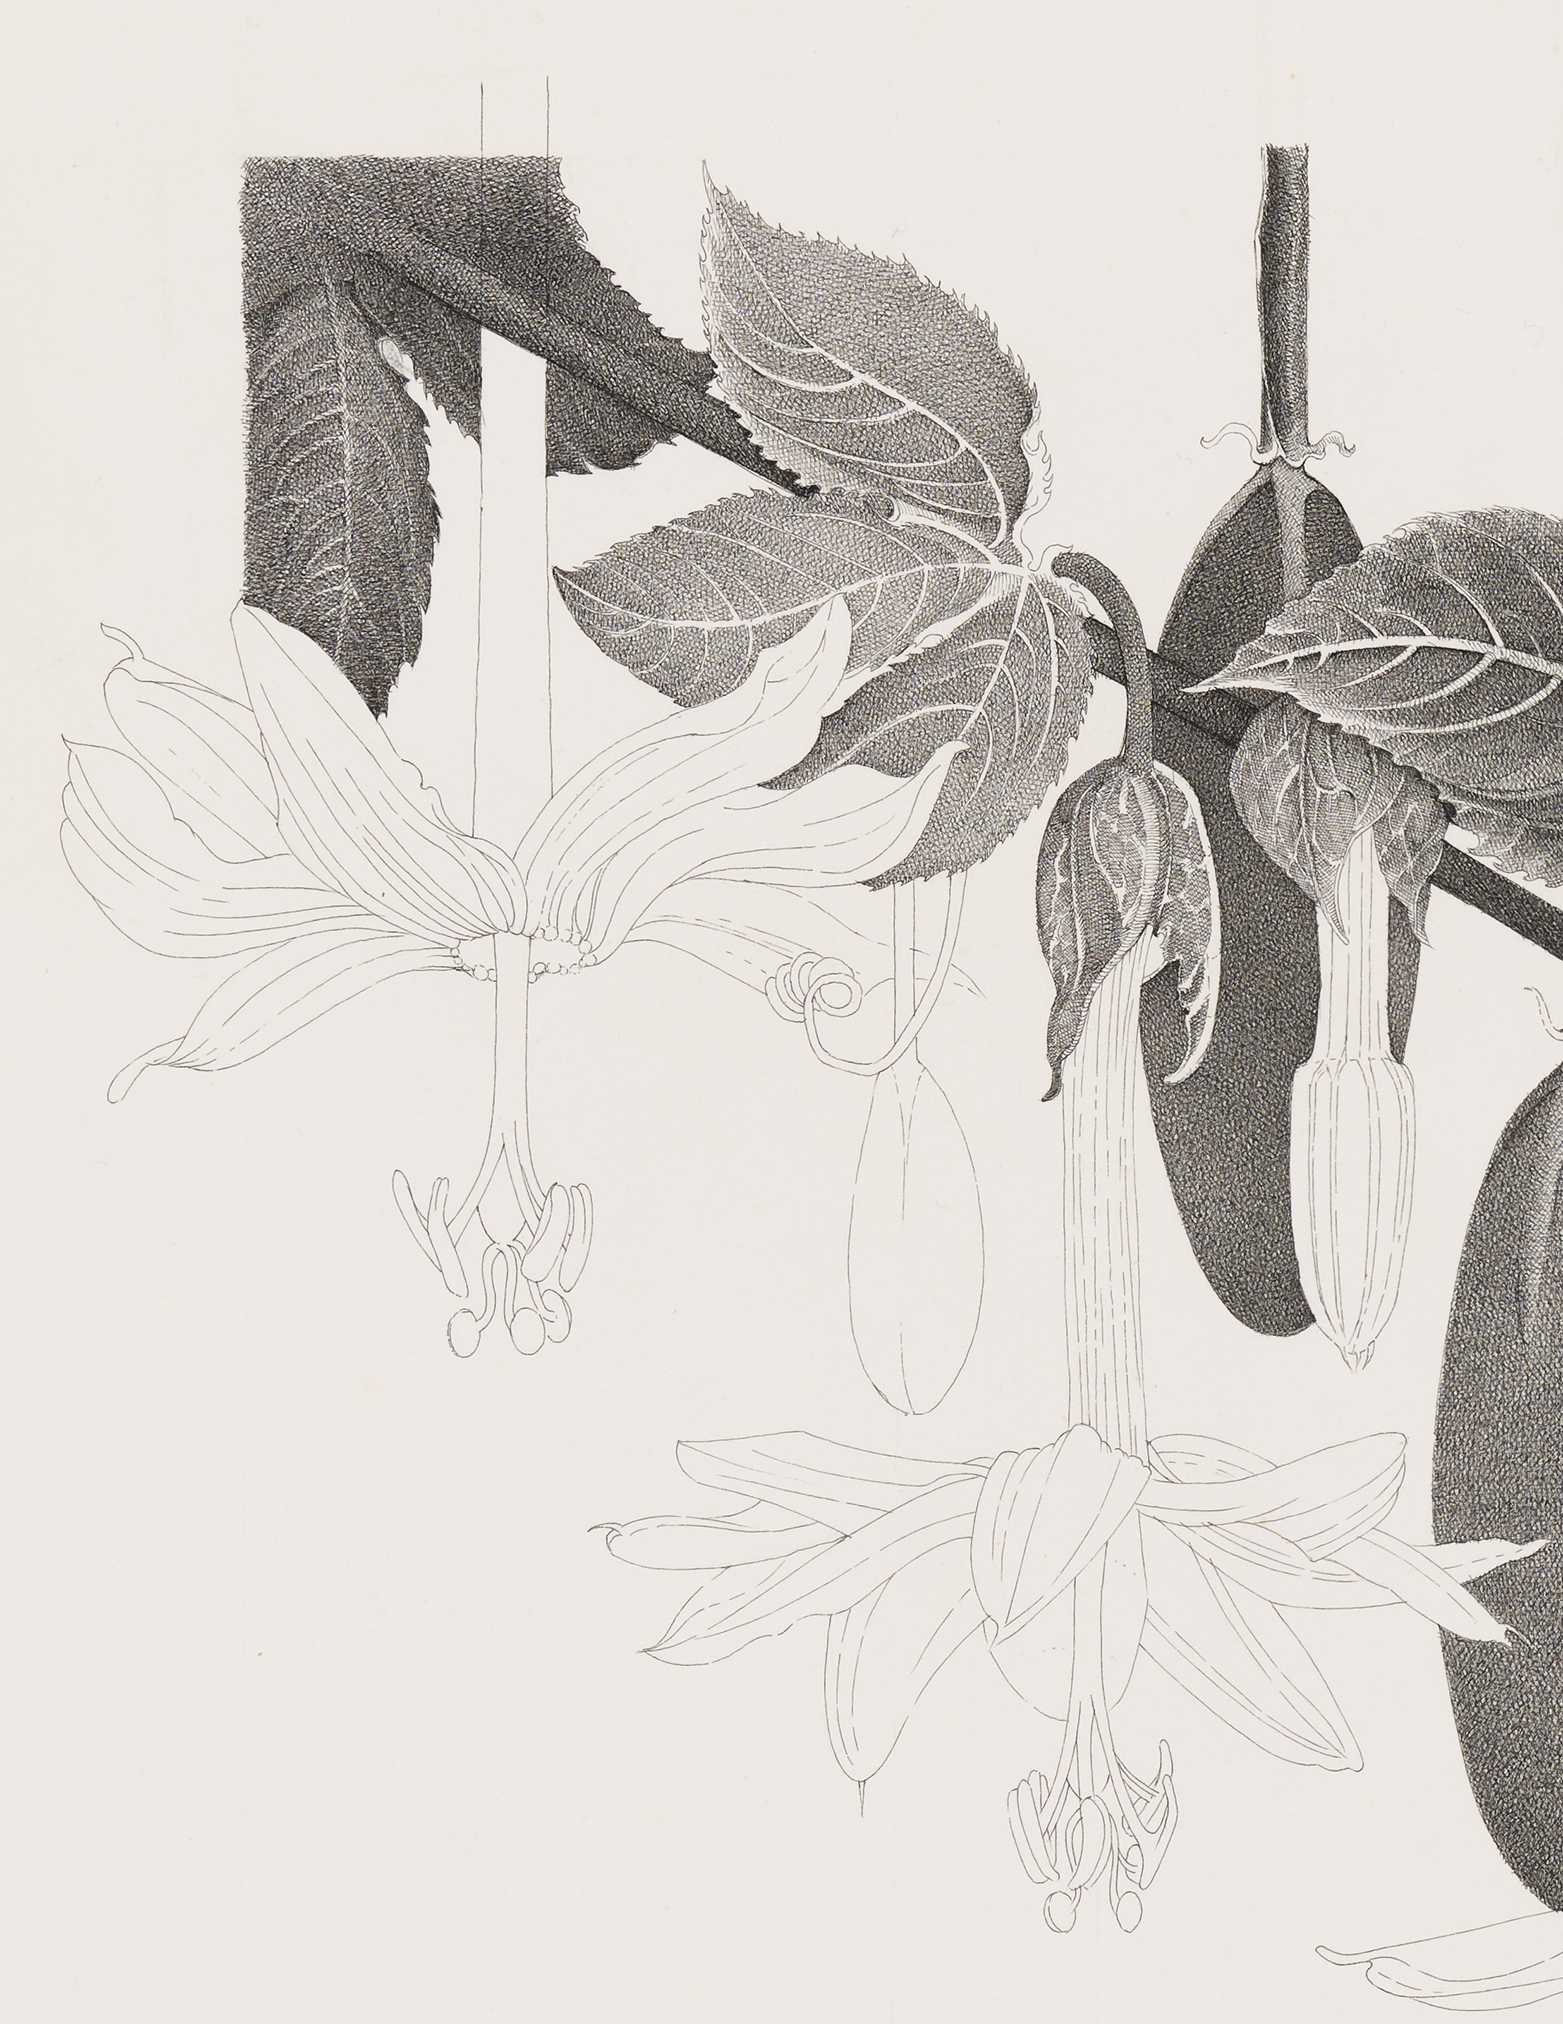 Charmian Johnson, not titled (detail), unknown date, ink on paper, 26 x 30 in. (65 x 76 cm) by